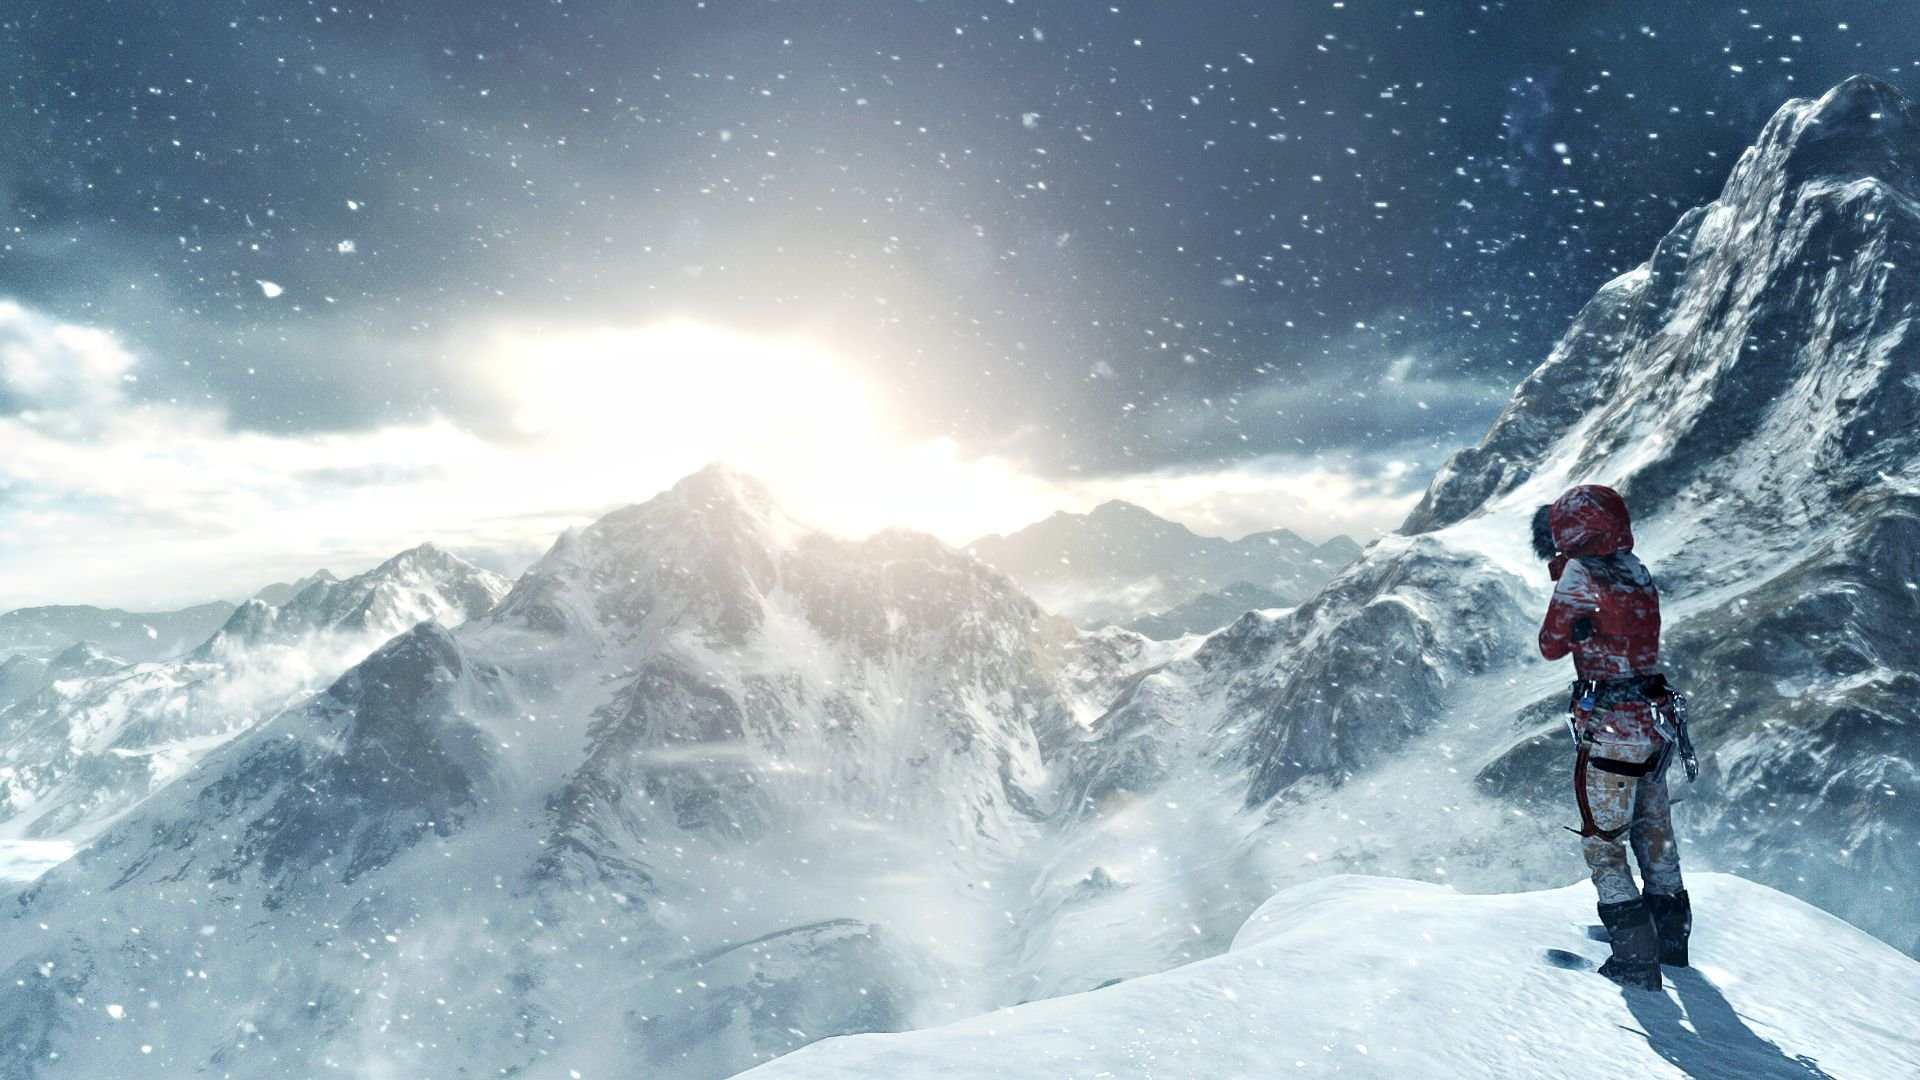 Rise Of The Tomb Raider Wallpapers 1920x1080 Full Hd 1080p